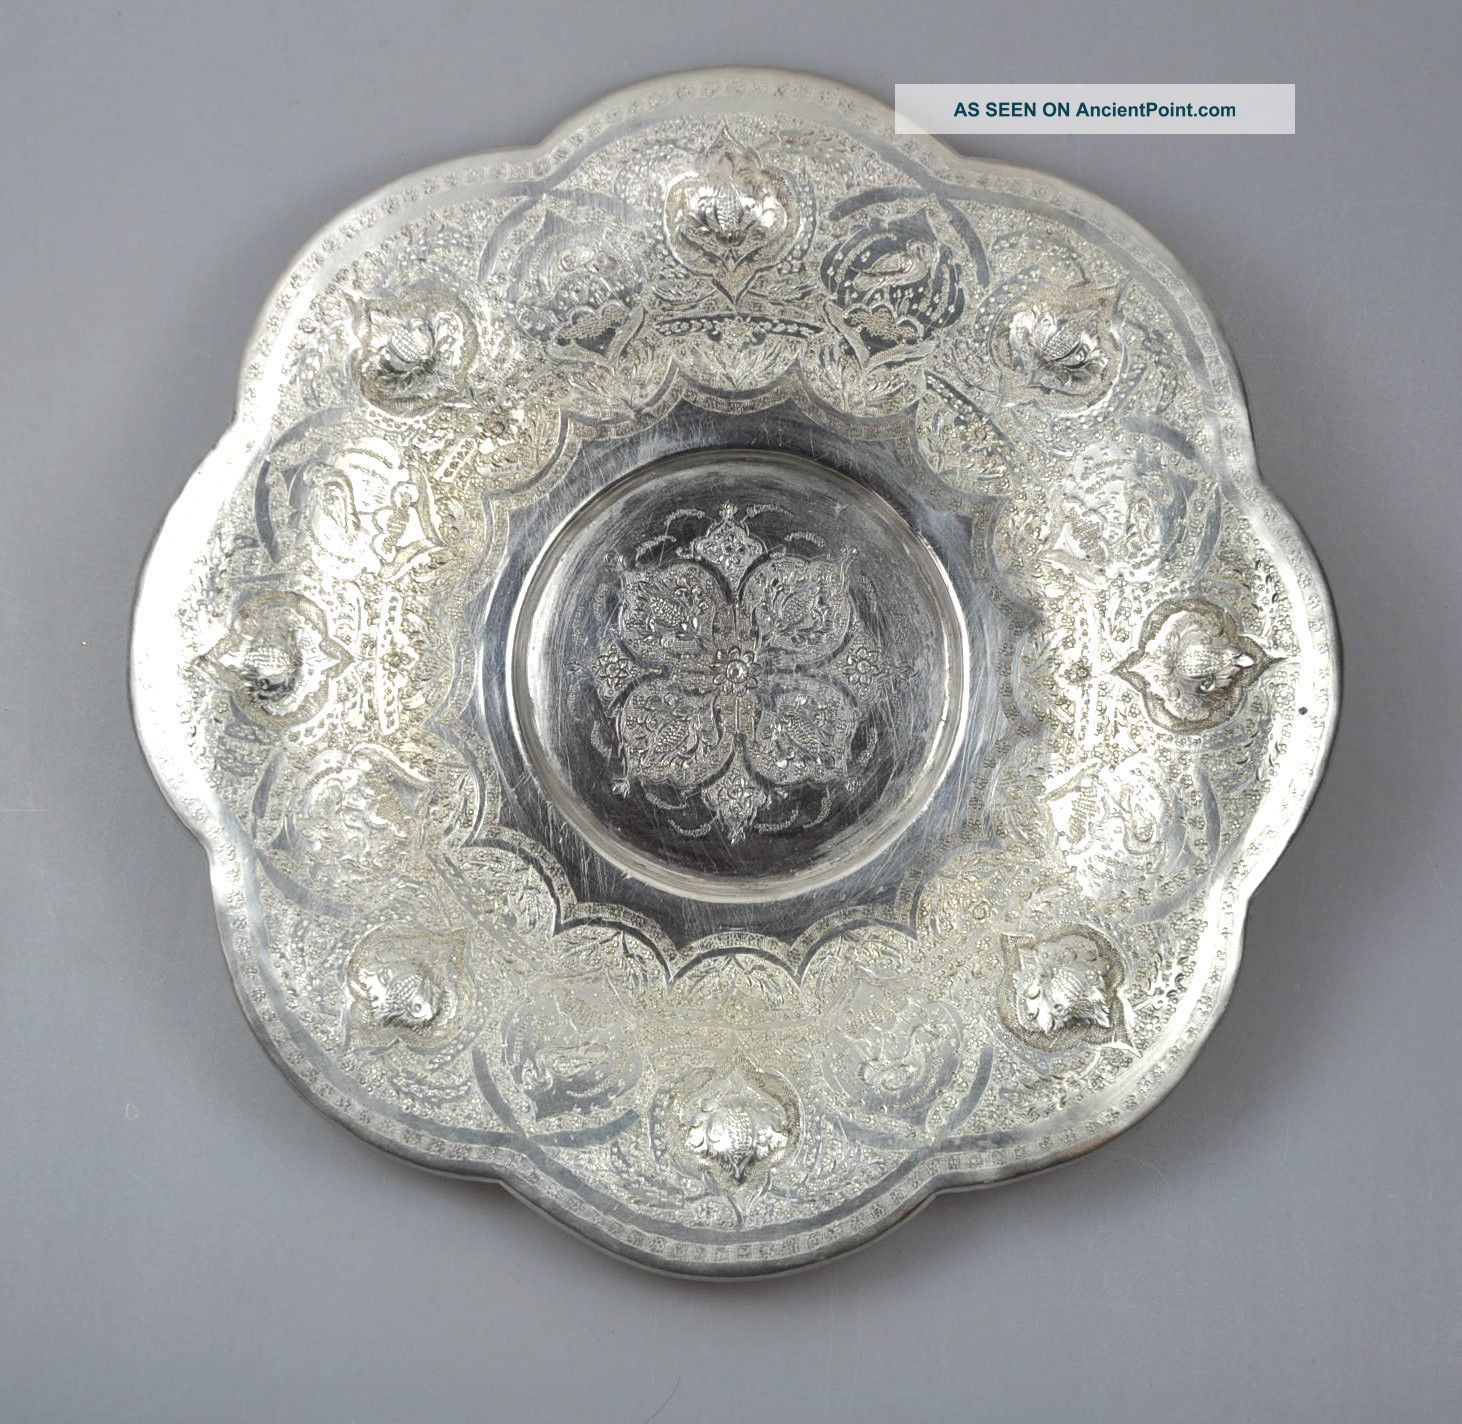 Antique Solid Silver Persian Persia Islamic Plate Charger Bird Flower Engraved Asia photo